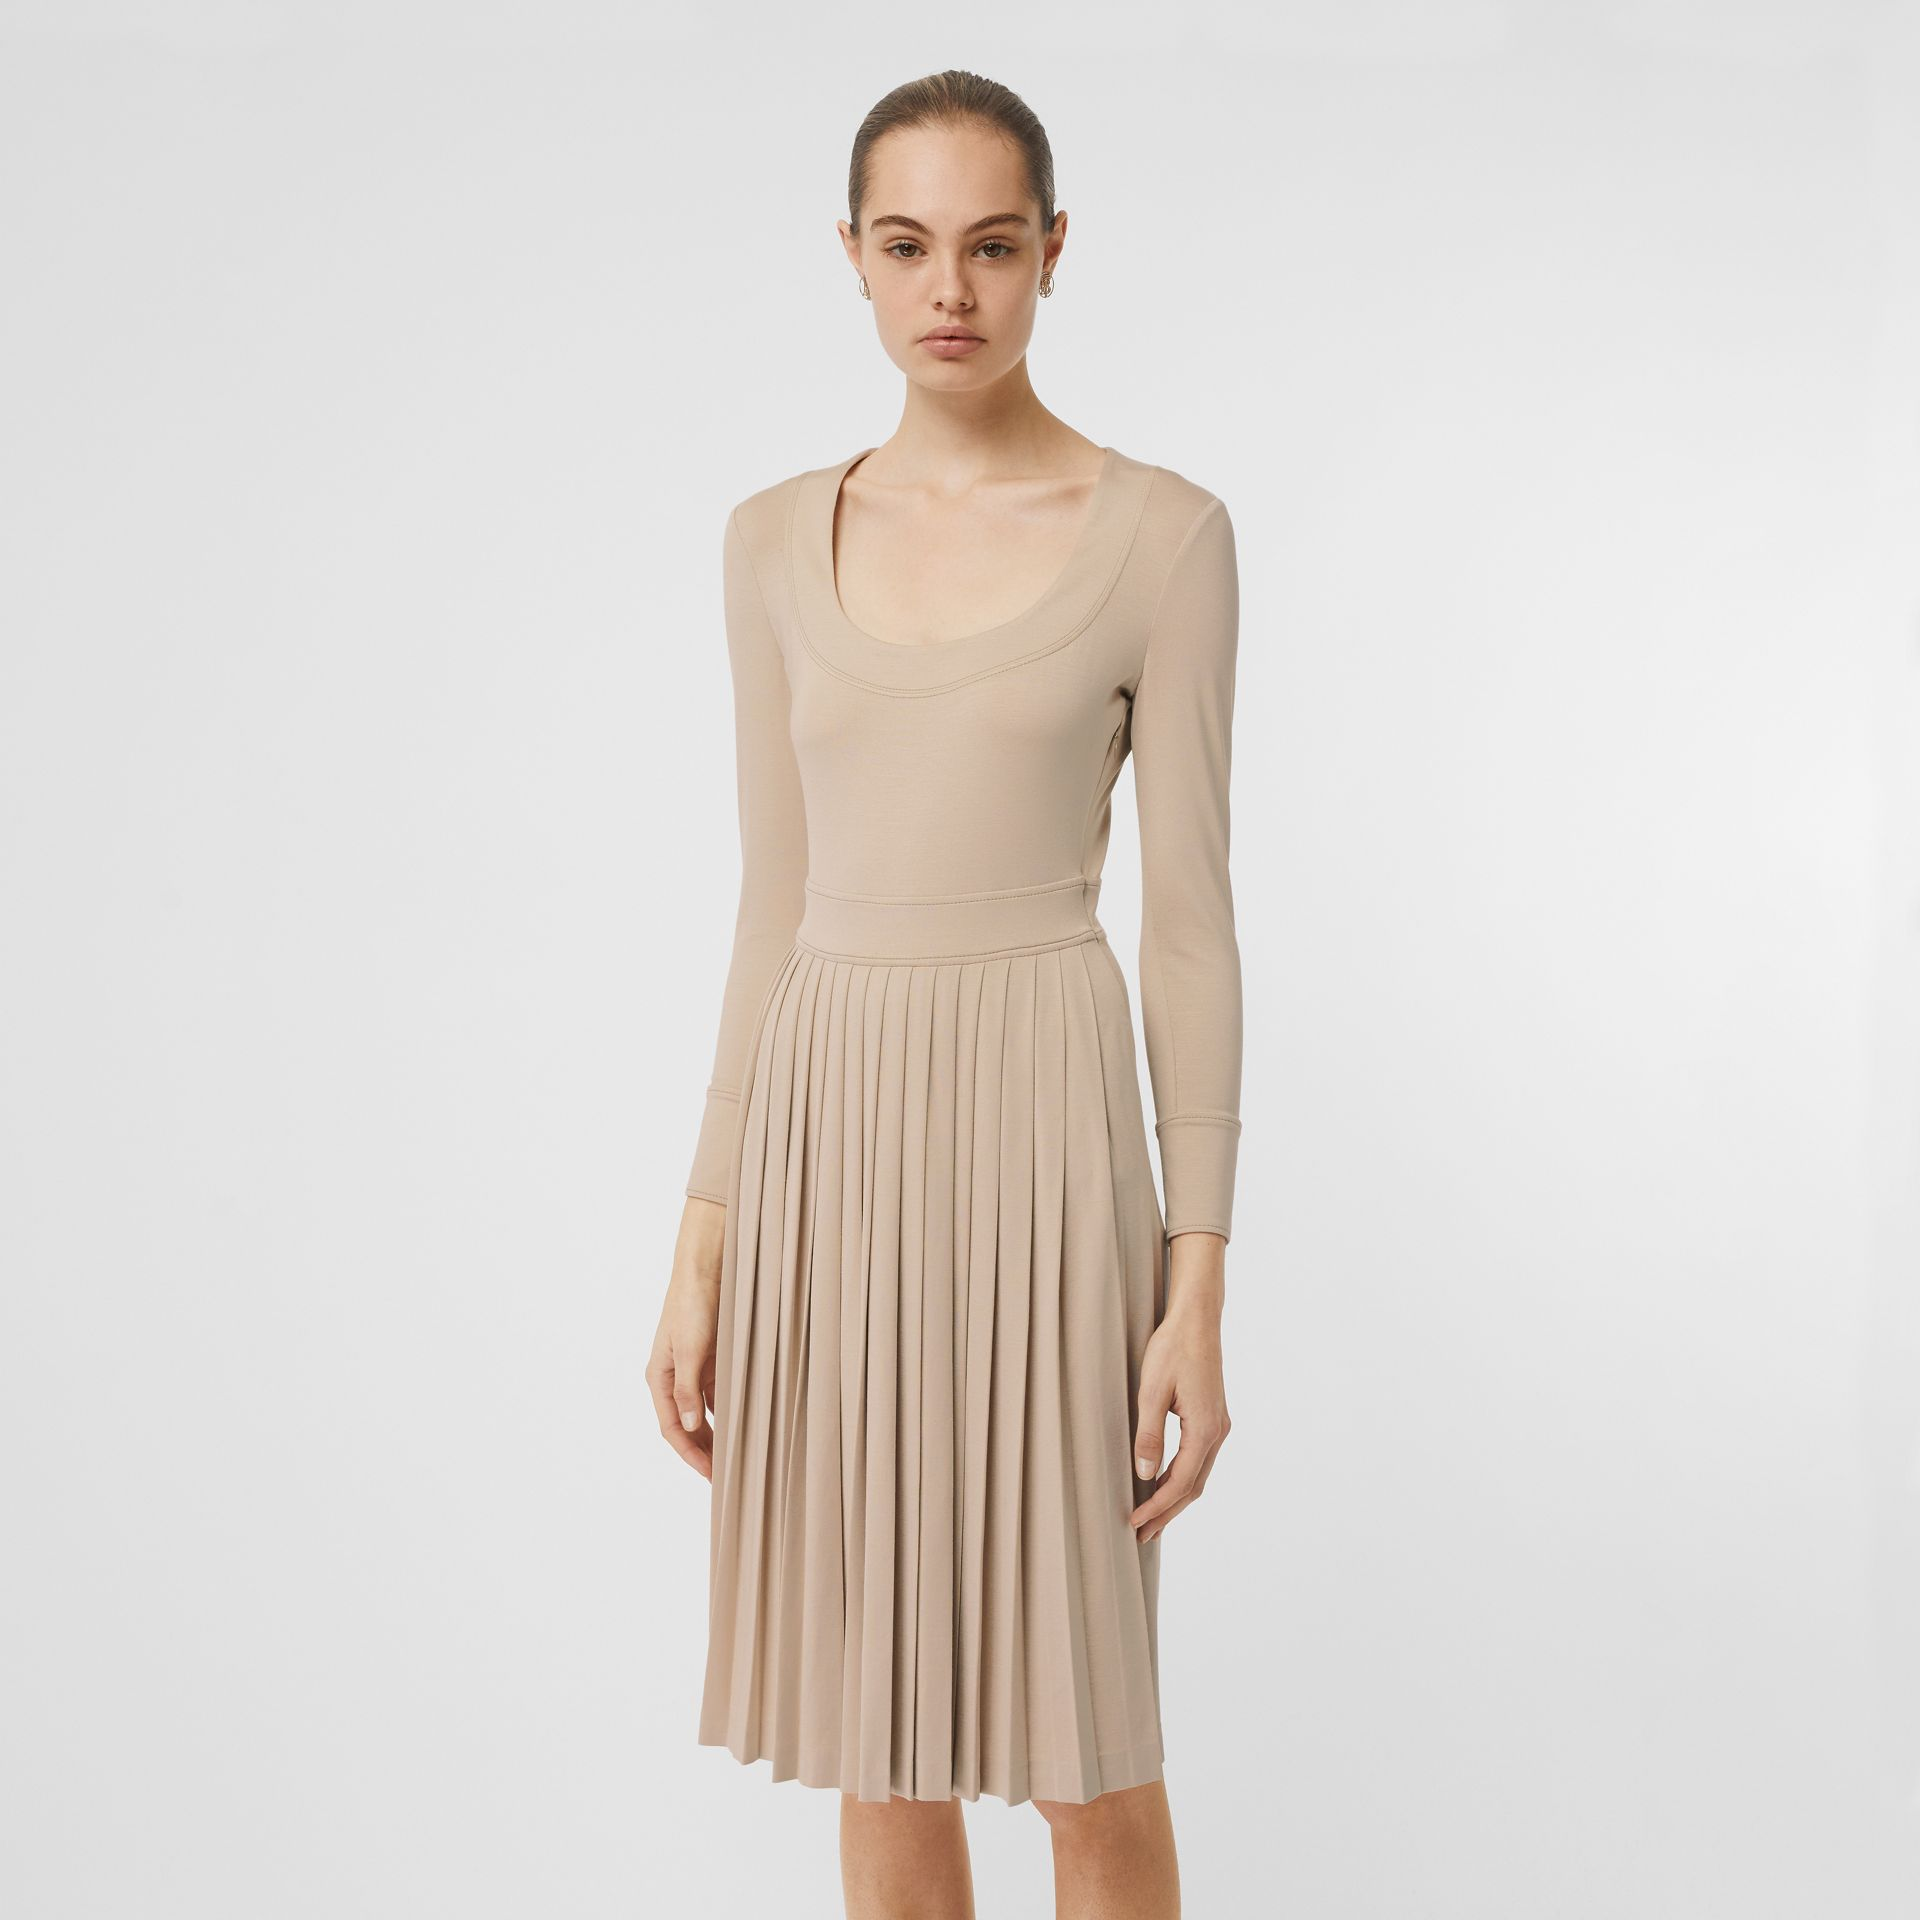 Long-sleeve Pleated Dress in Teddy Beige - Women | Burberry - gallery image 0